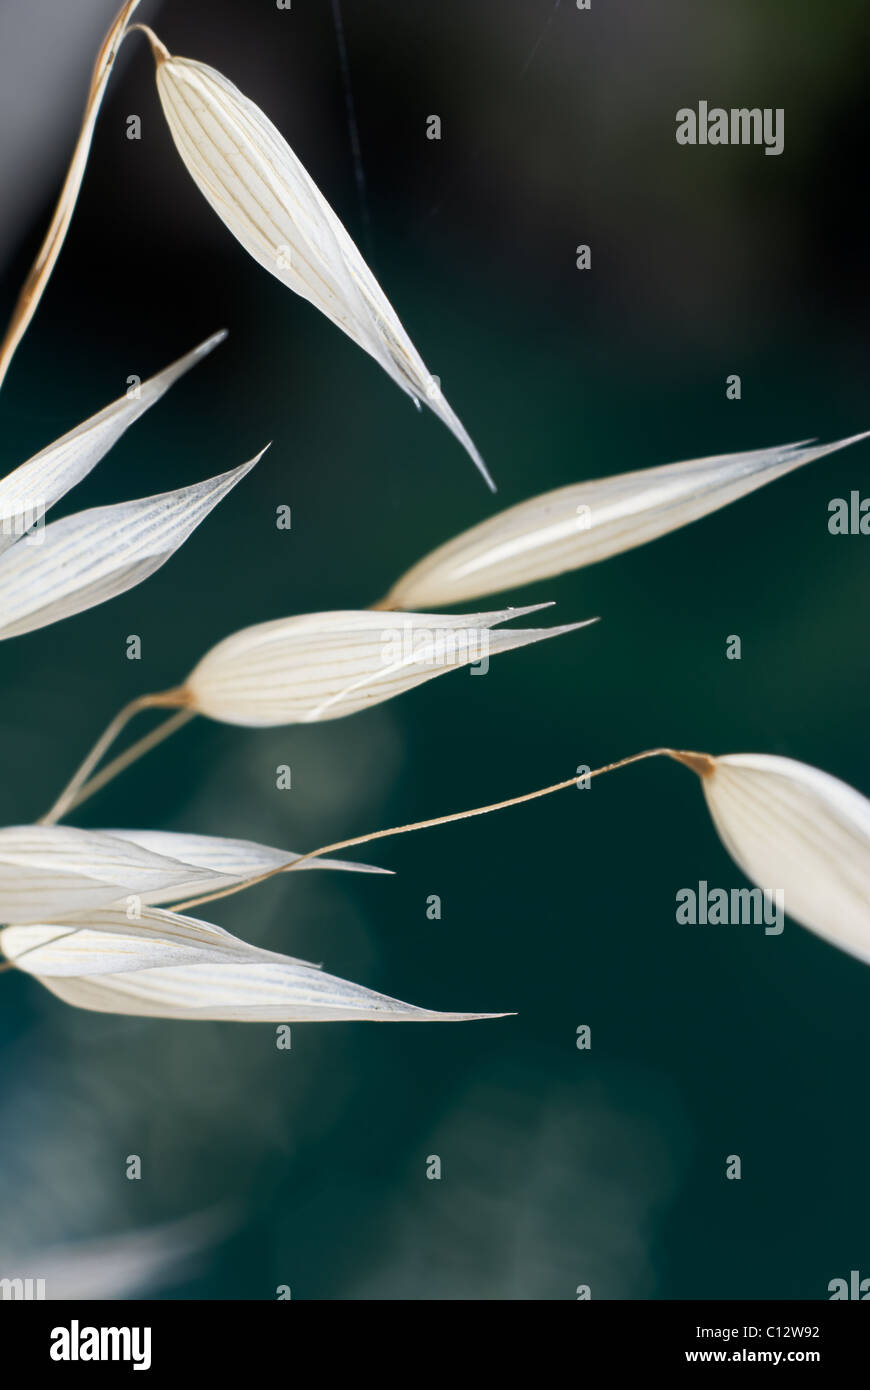 Ornamental grass, Granda, Andalusia, Spain - Stock Image